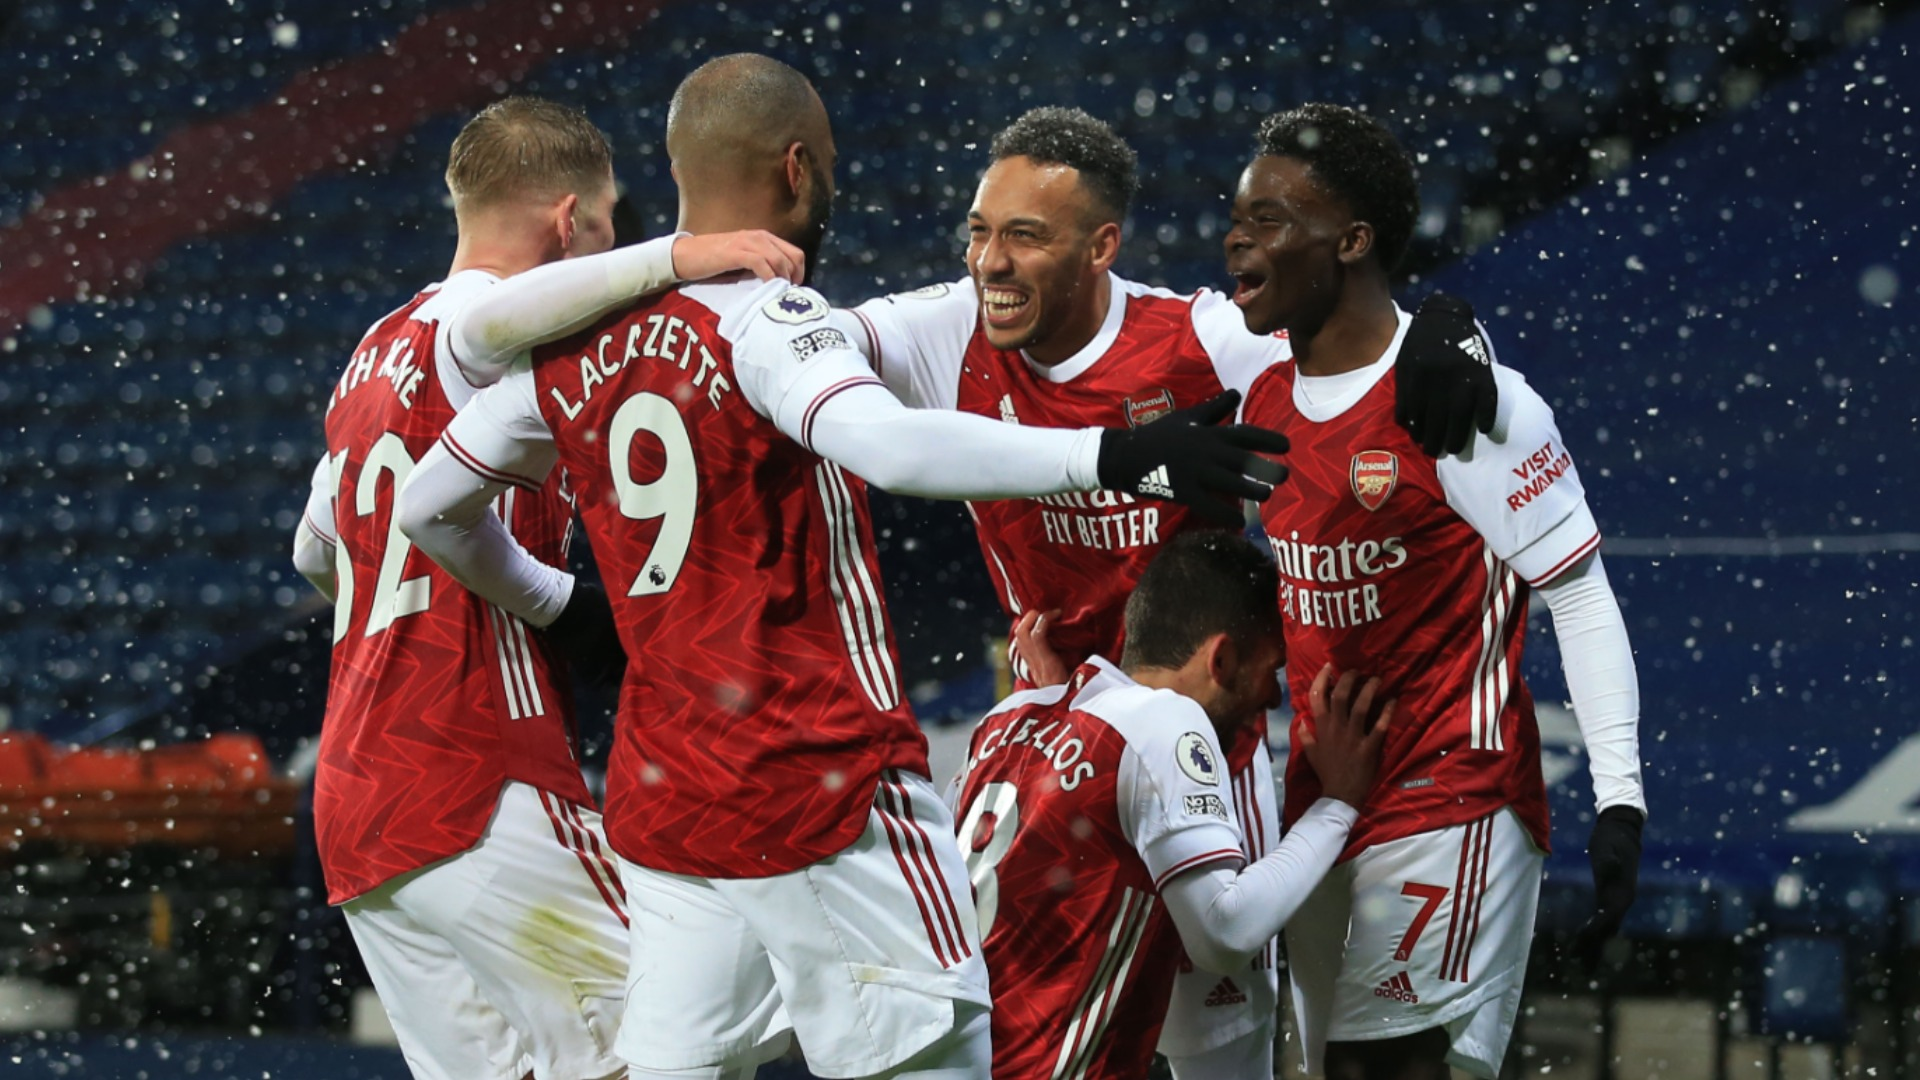 West Brom 0-4 Arsenal: Revived Gunners make it three in a row in the snow